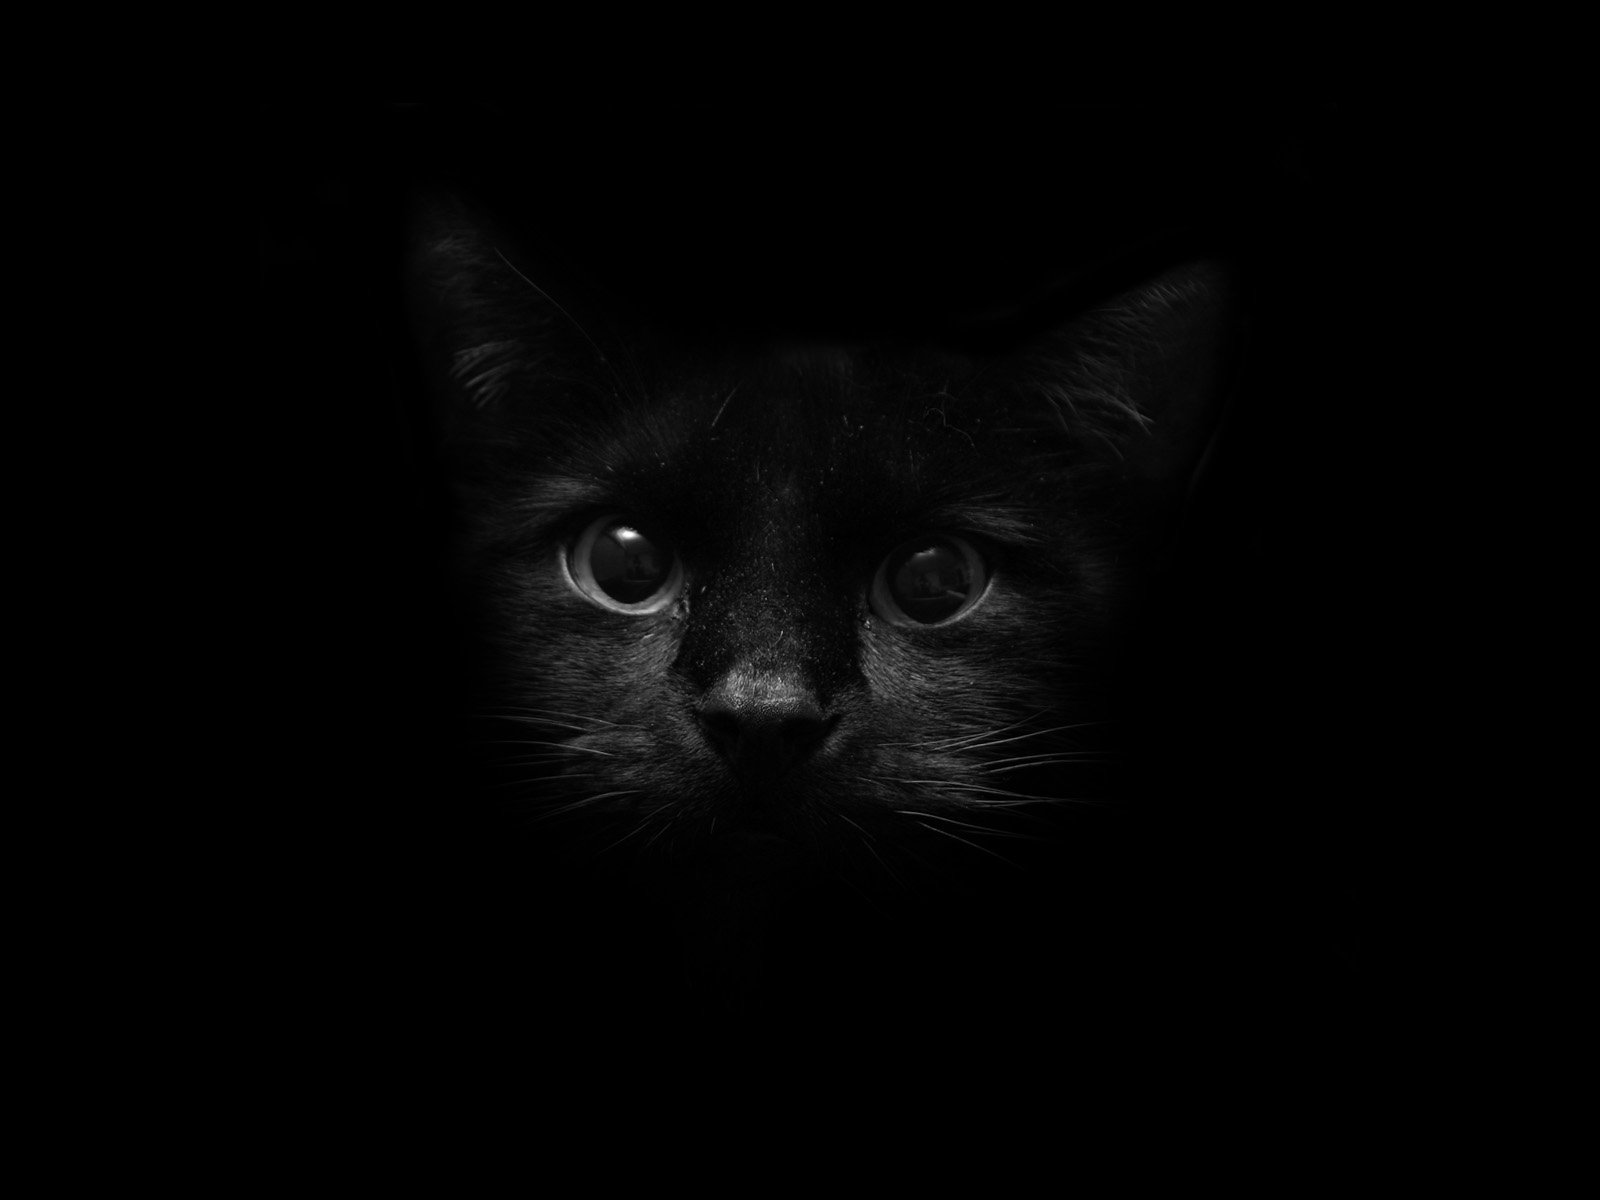 Animal - Cat  Animal Black Wallpaper